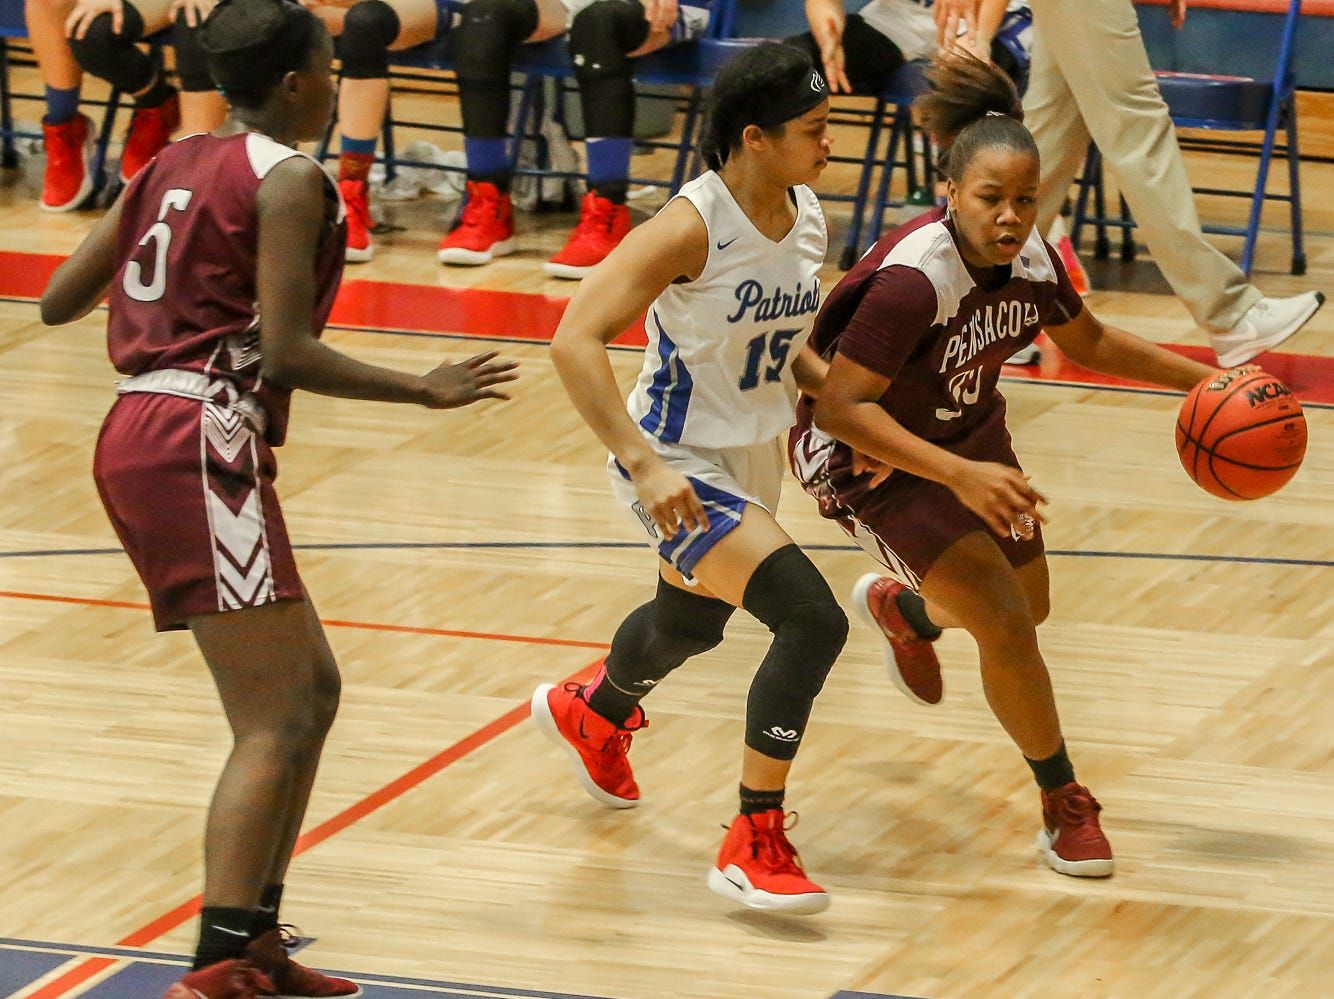 PHS' Joniya Perry (35) slides around Pace's Cyla Byrd (15) on her way toward the basket at Pace High School on Friday, January 4, 2019.